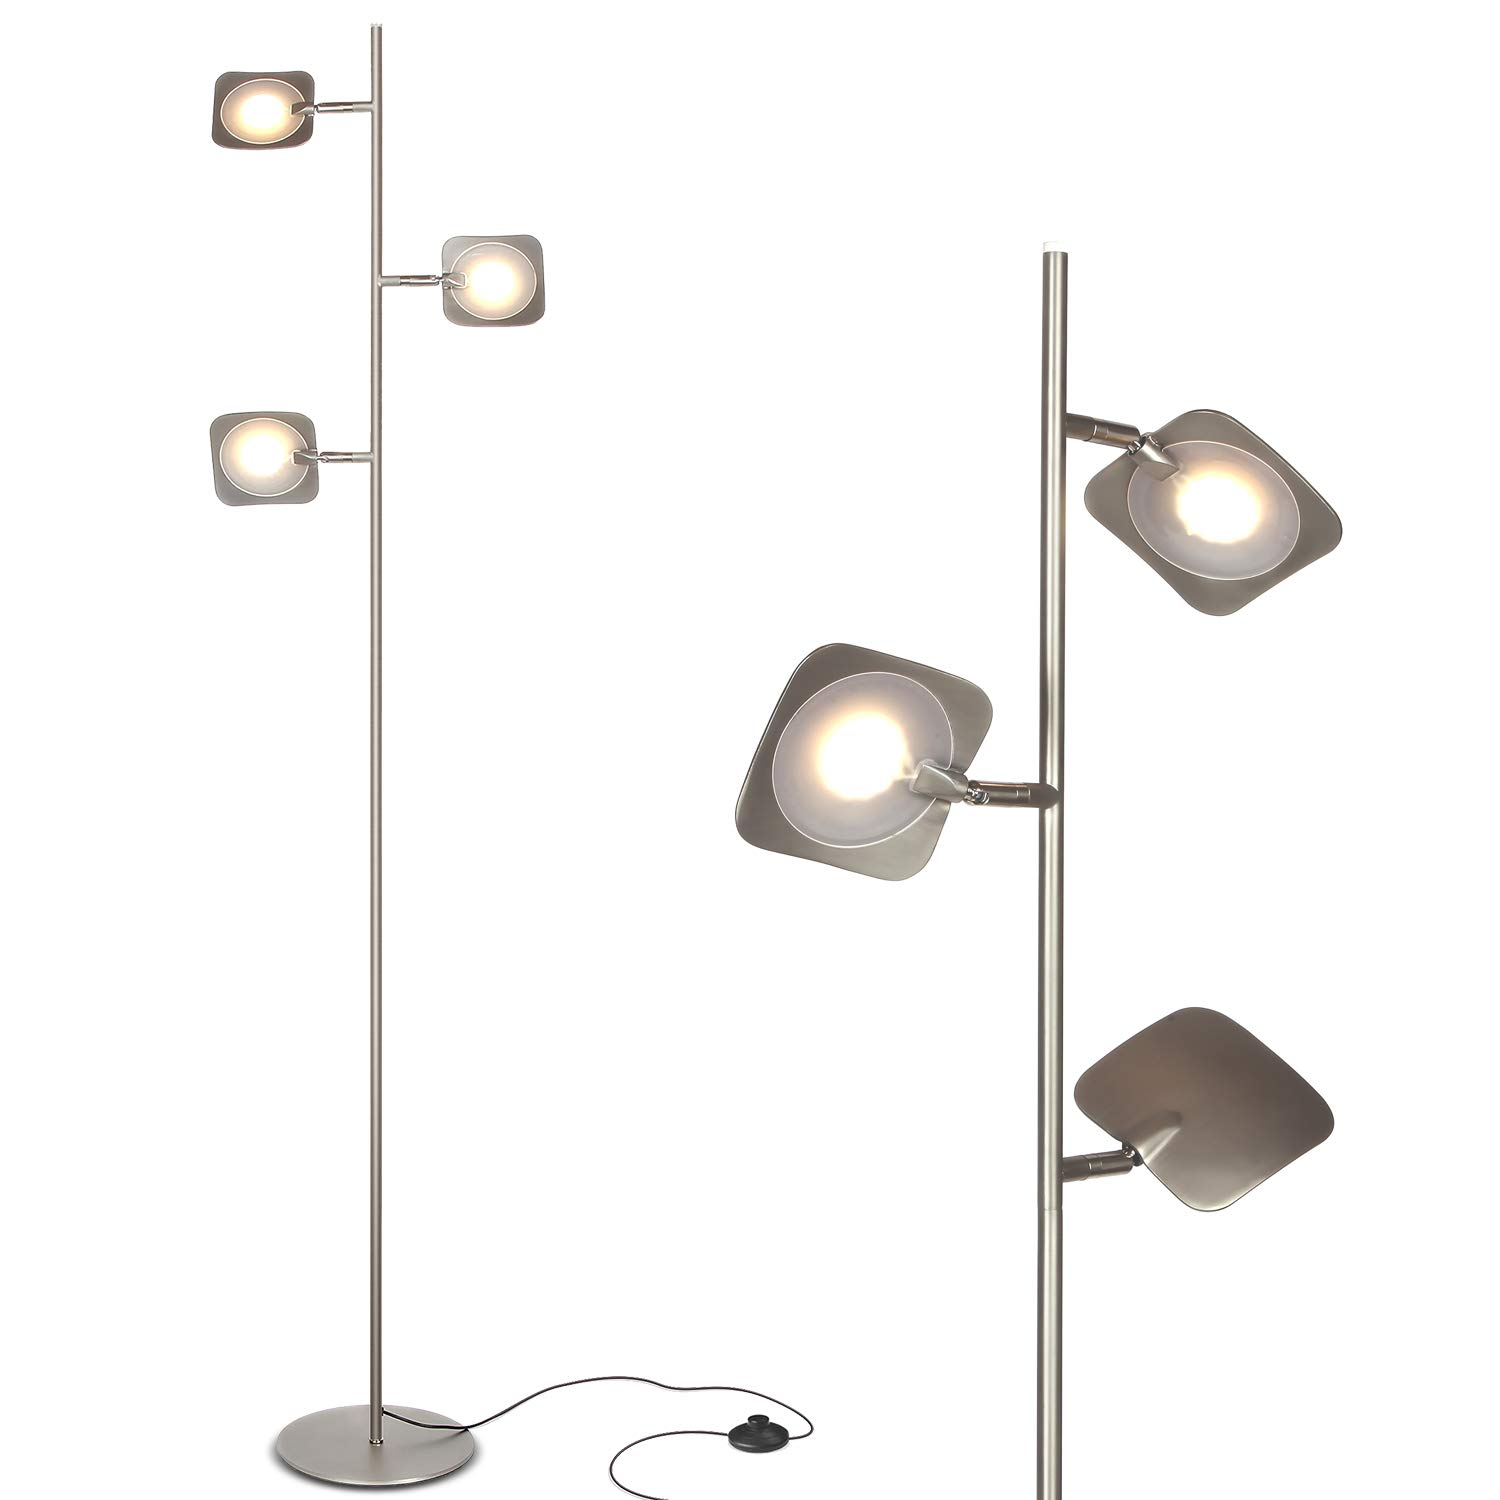 Brightech Tree Spotlight LED Floor Lamp - Very Bright Reading, Craft and Makeup 3 Light Standing Pole - Modern Dimmable & Adjustable Panels - Corner Lamp - Satin Nickel by Brightech